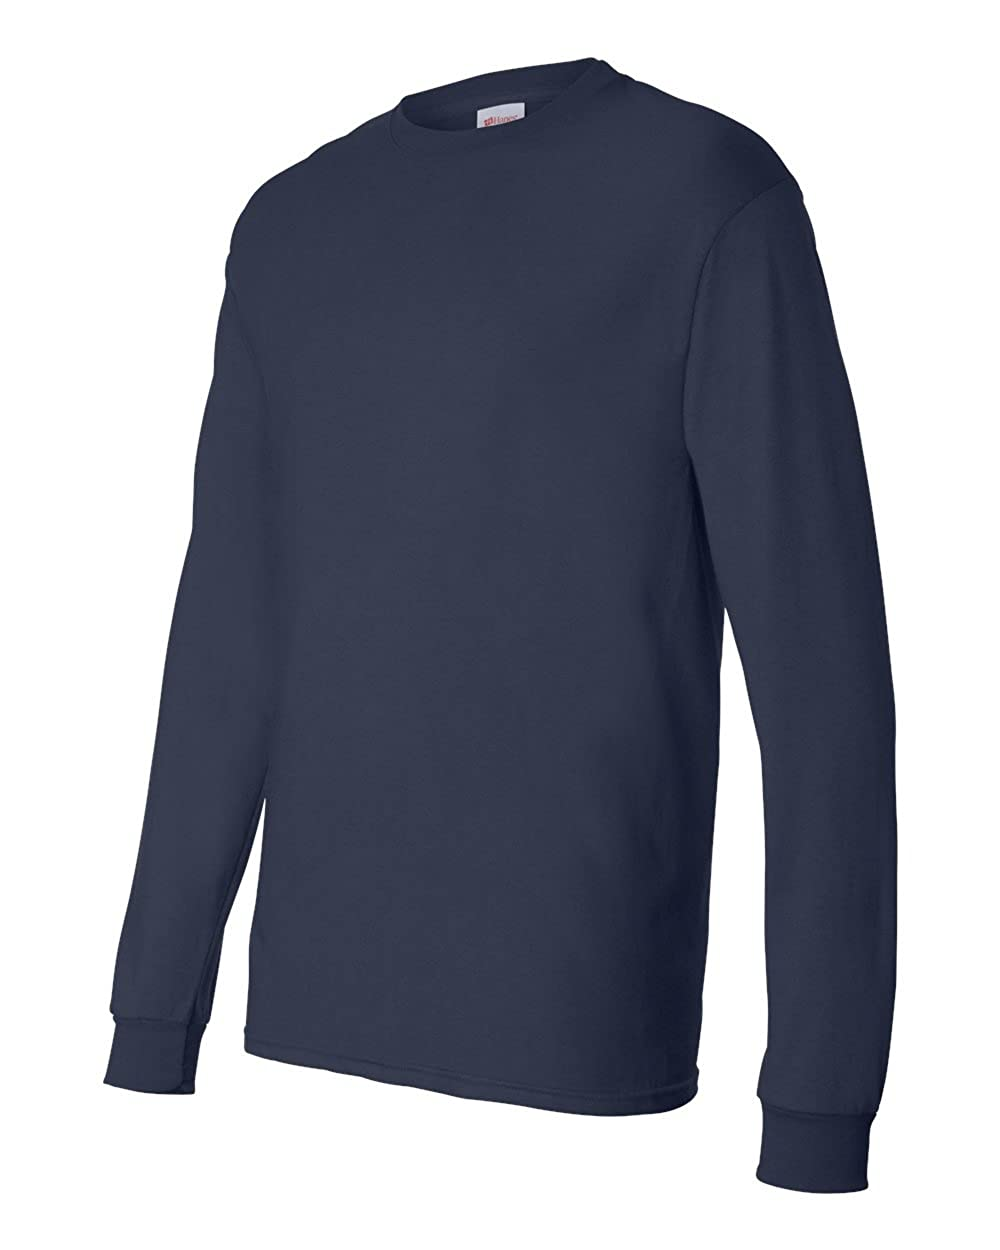 Navy ComfortSoft Cotton Long-Sleeve T-Shirt Hanes Mens 5.2 oz